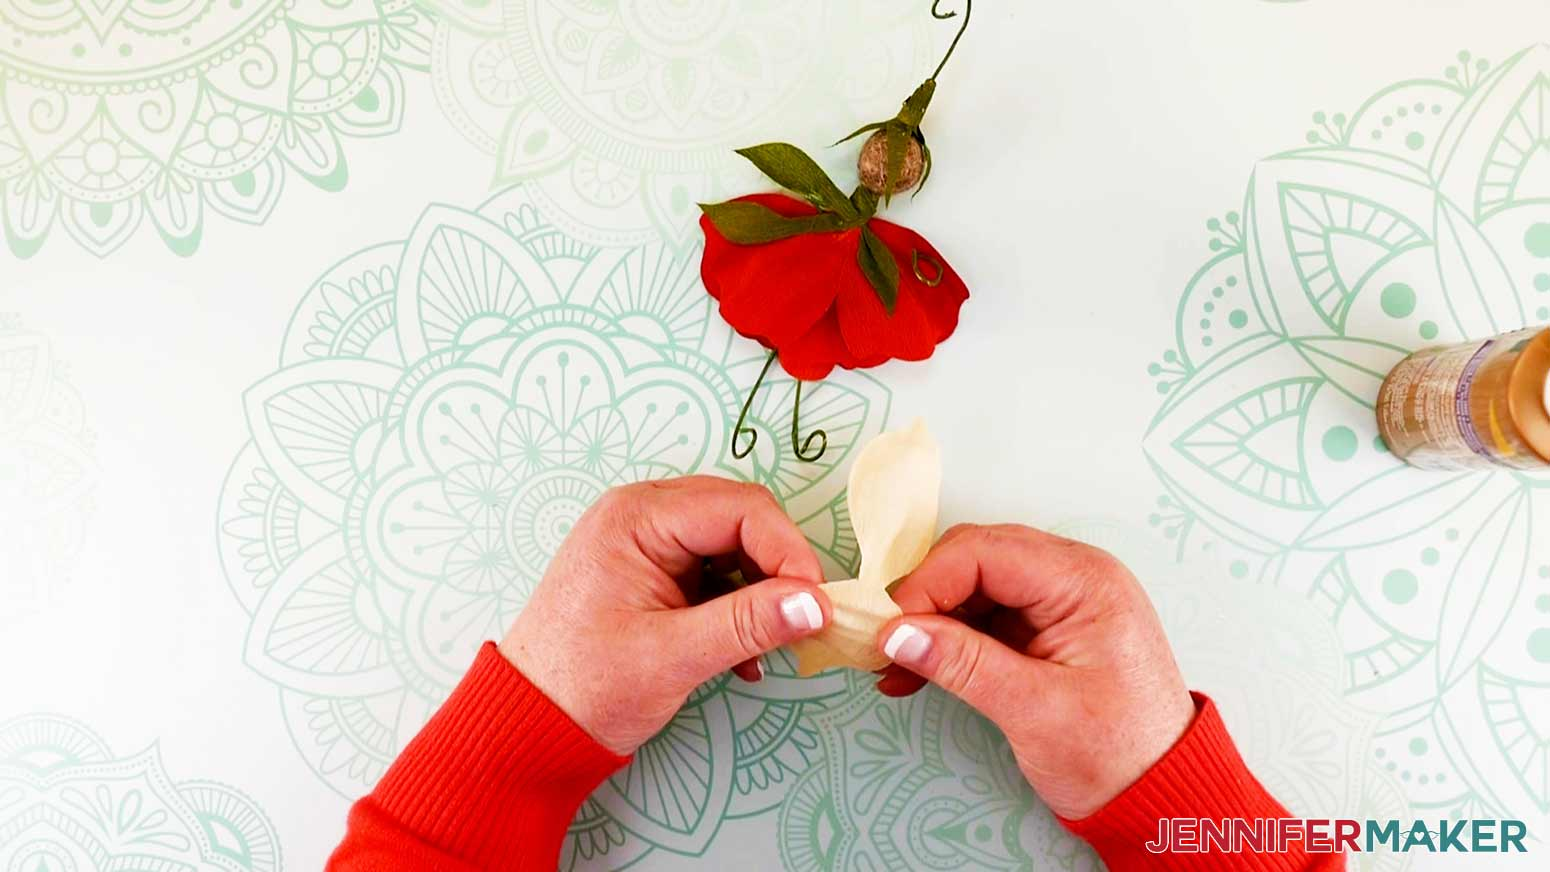 Shaping wings of flower fairy doll